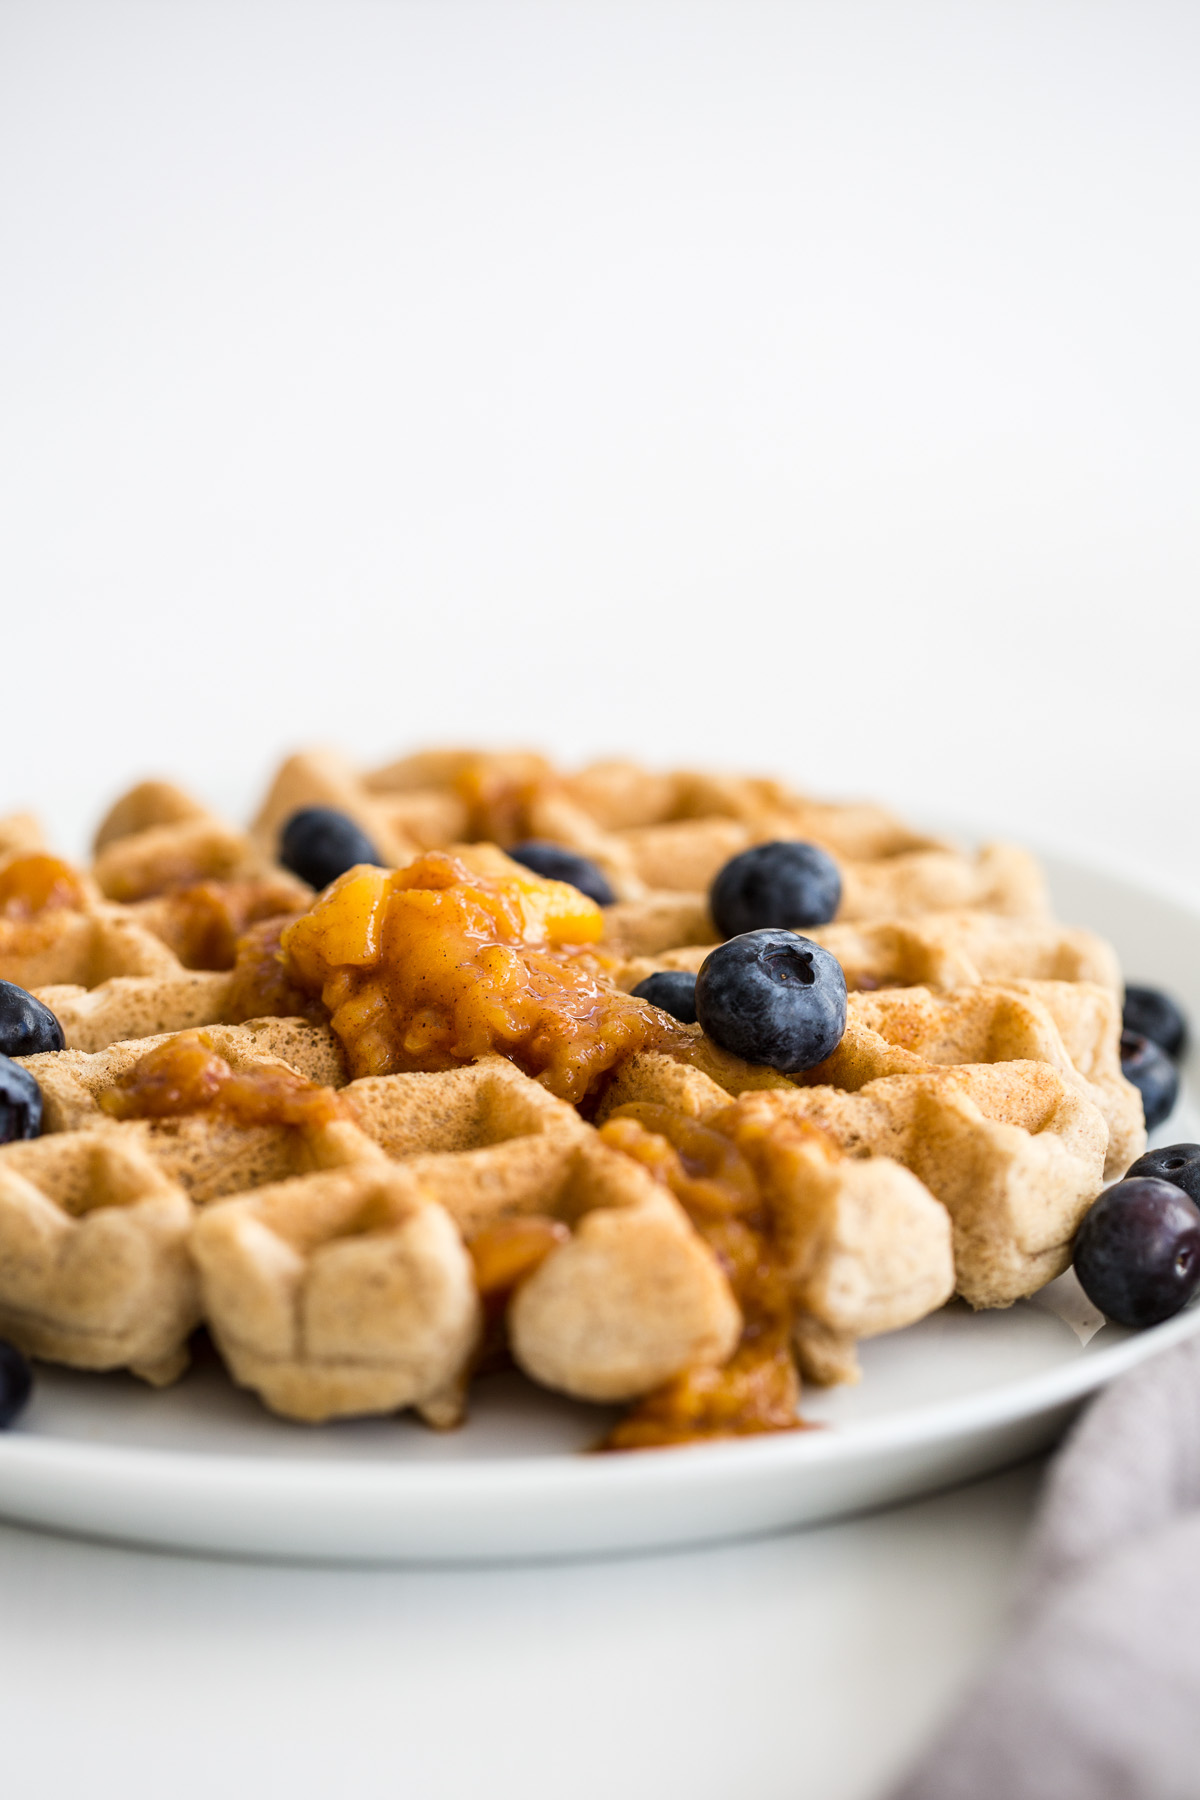 waffles serving size 1 waffle plus about 3 tbps peach sauce calories ...